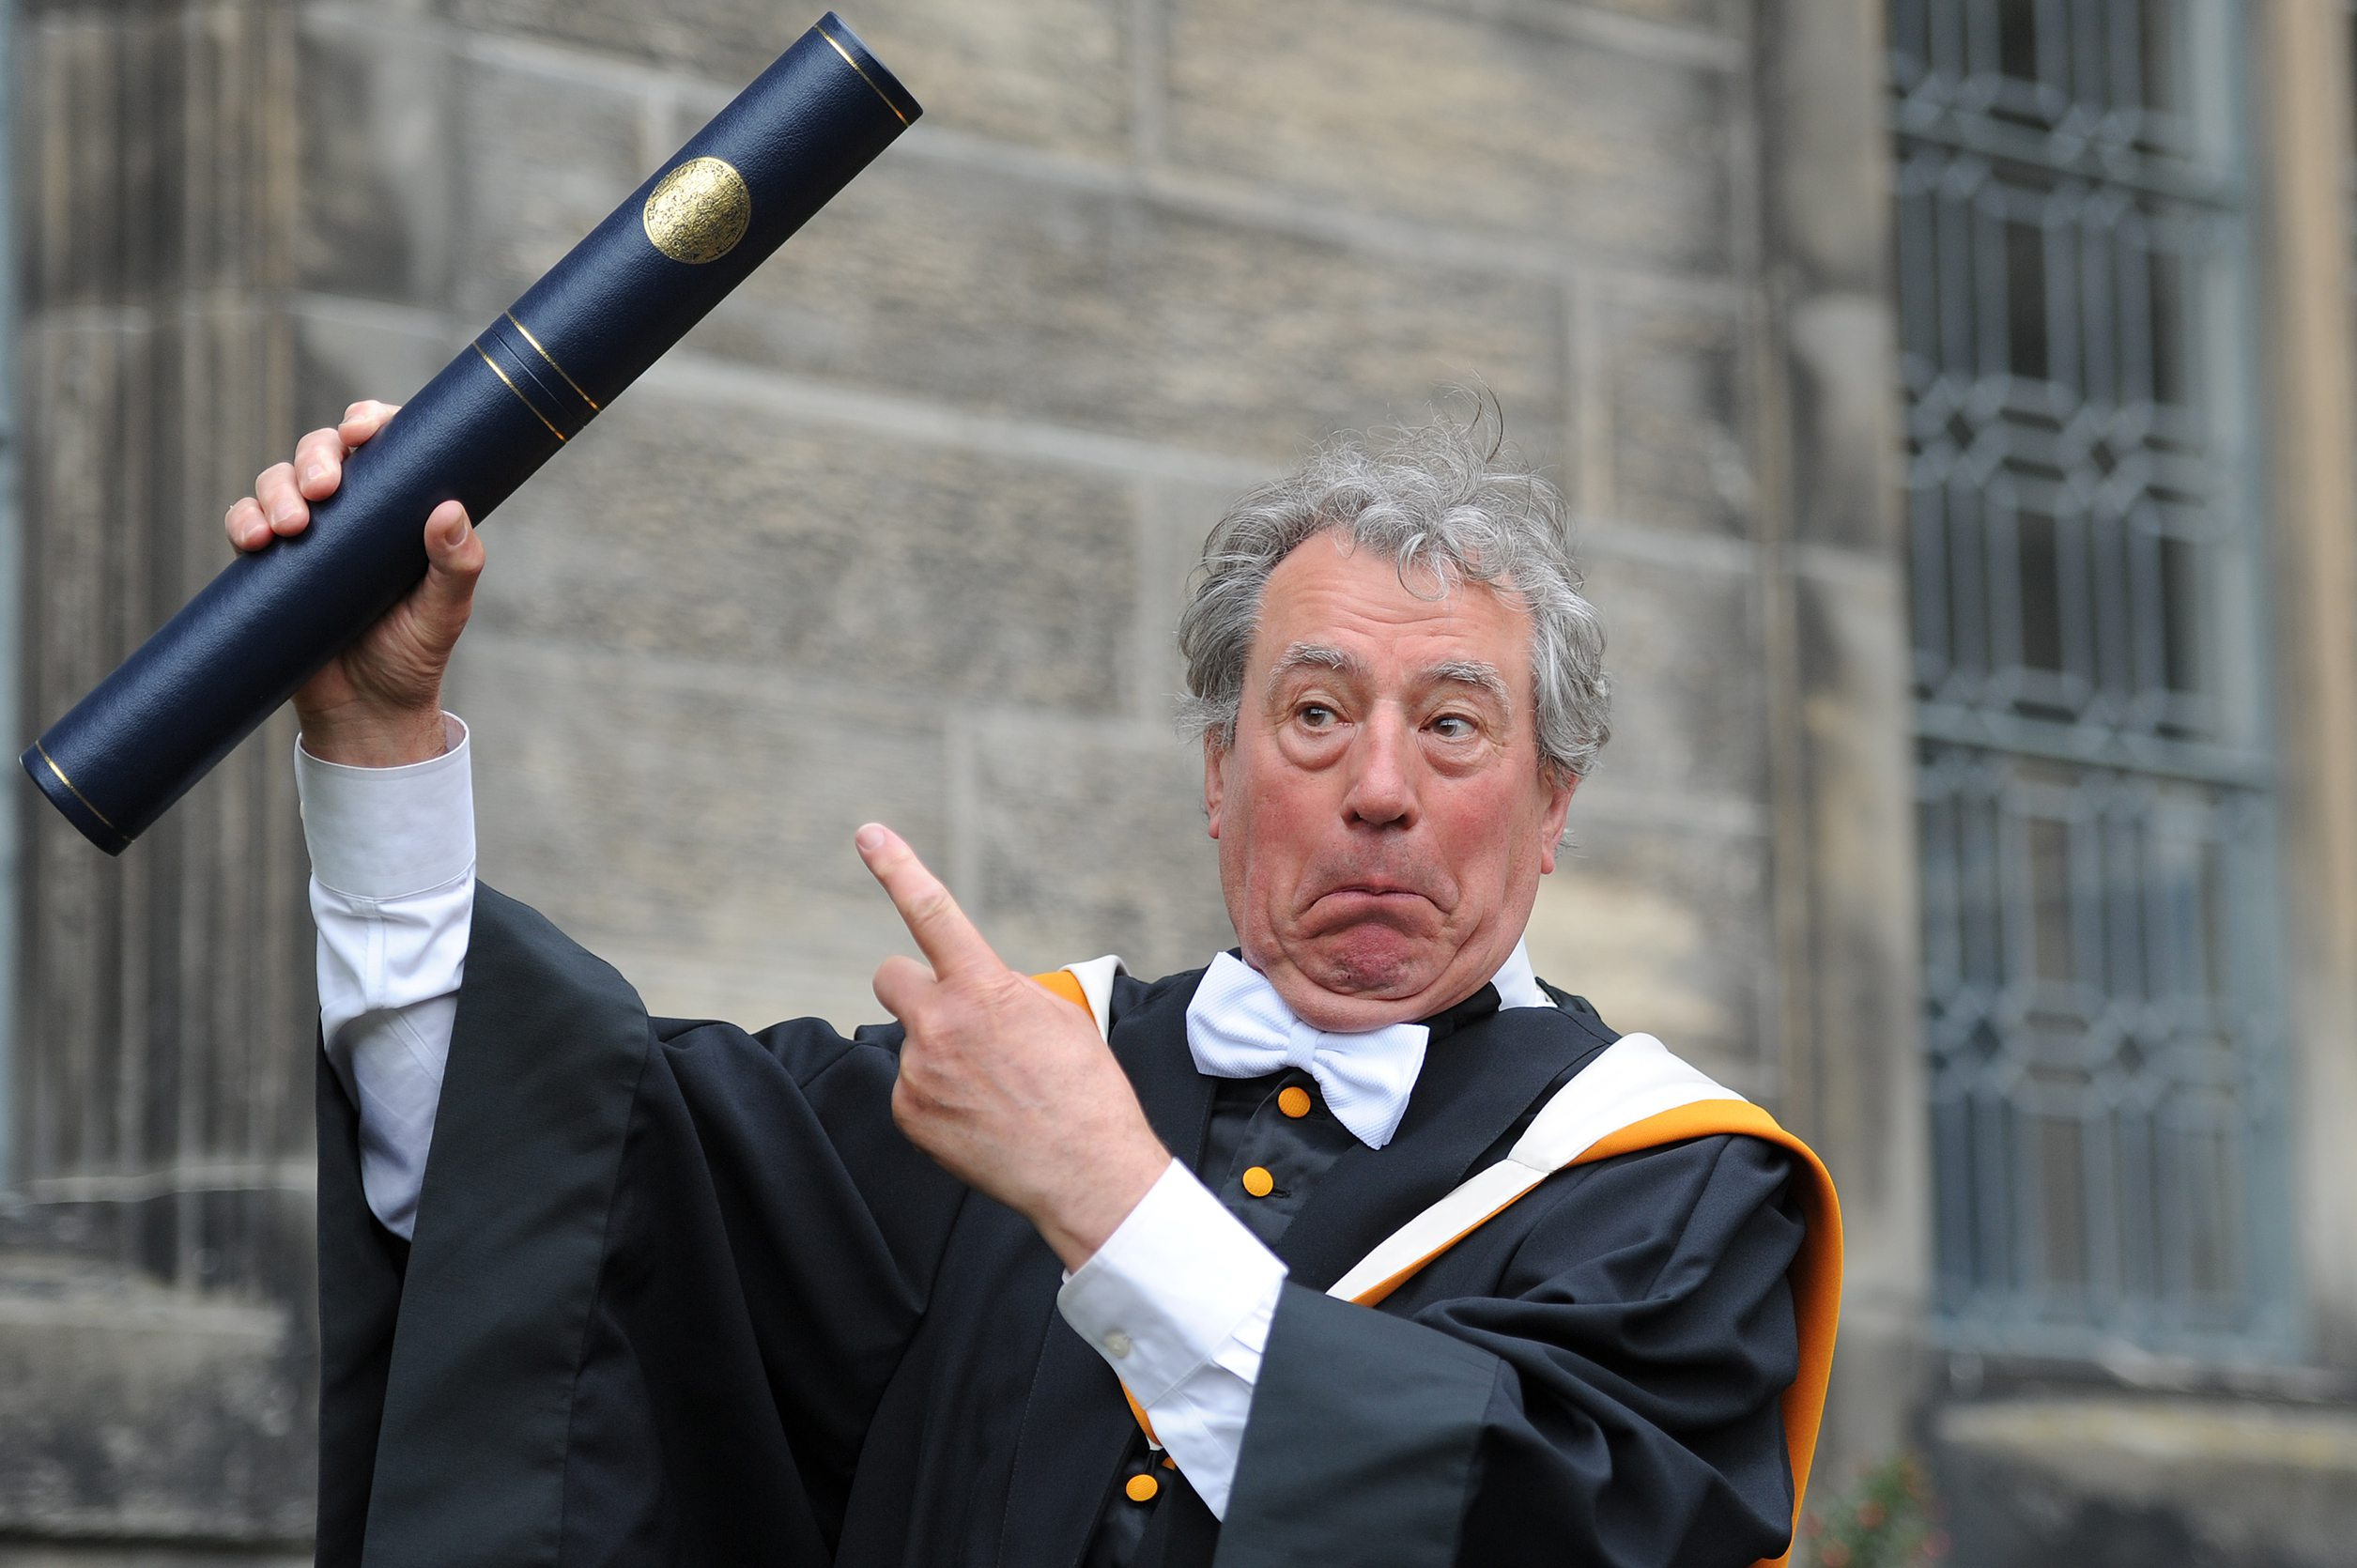 Terry Jones receiving his honorary degree from St Andrews University in 2013.